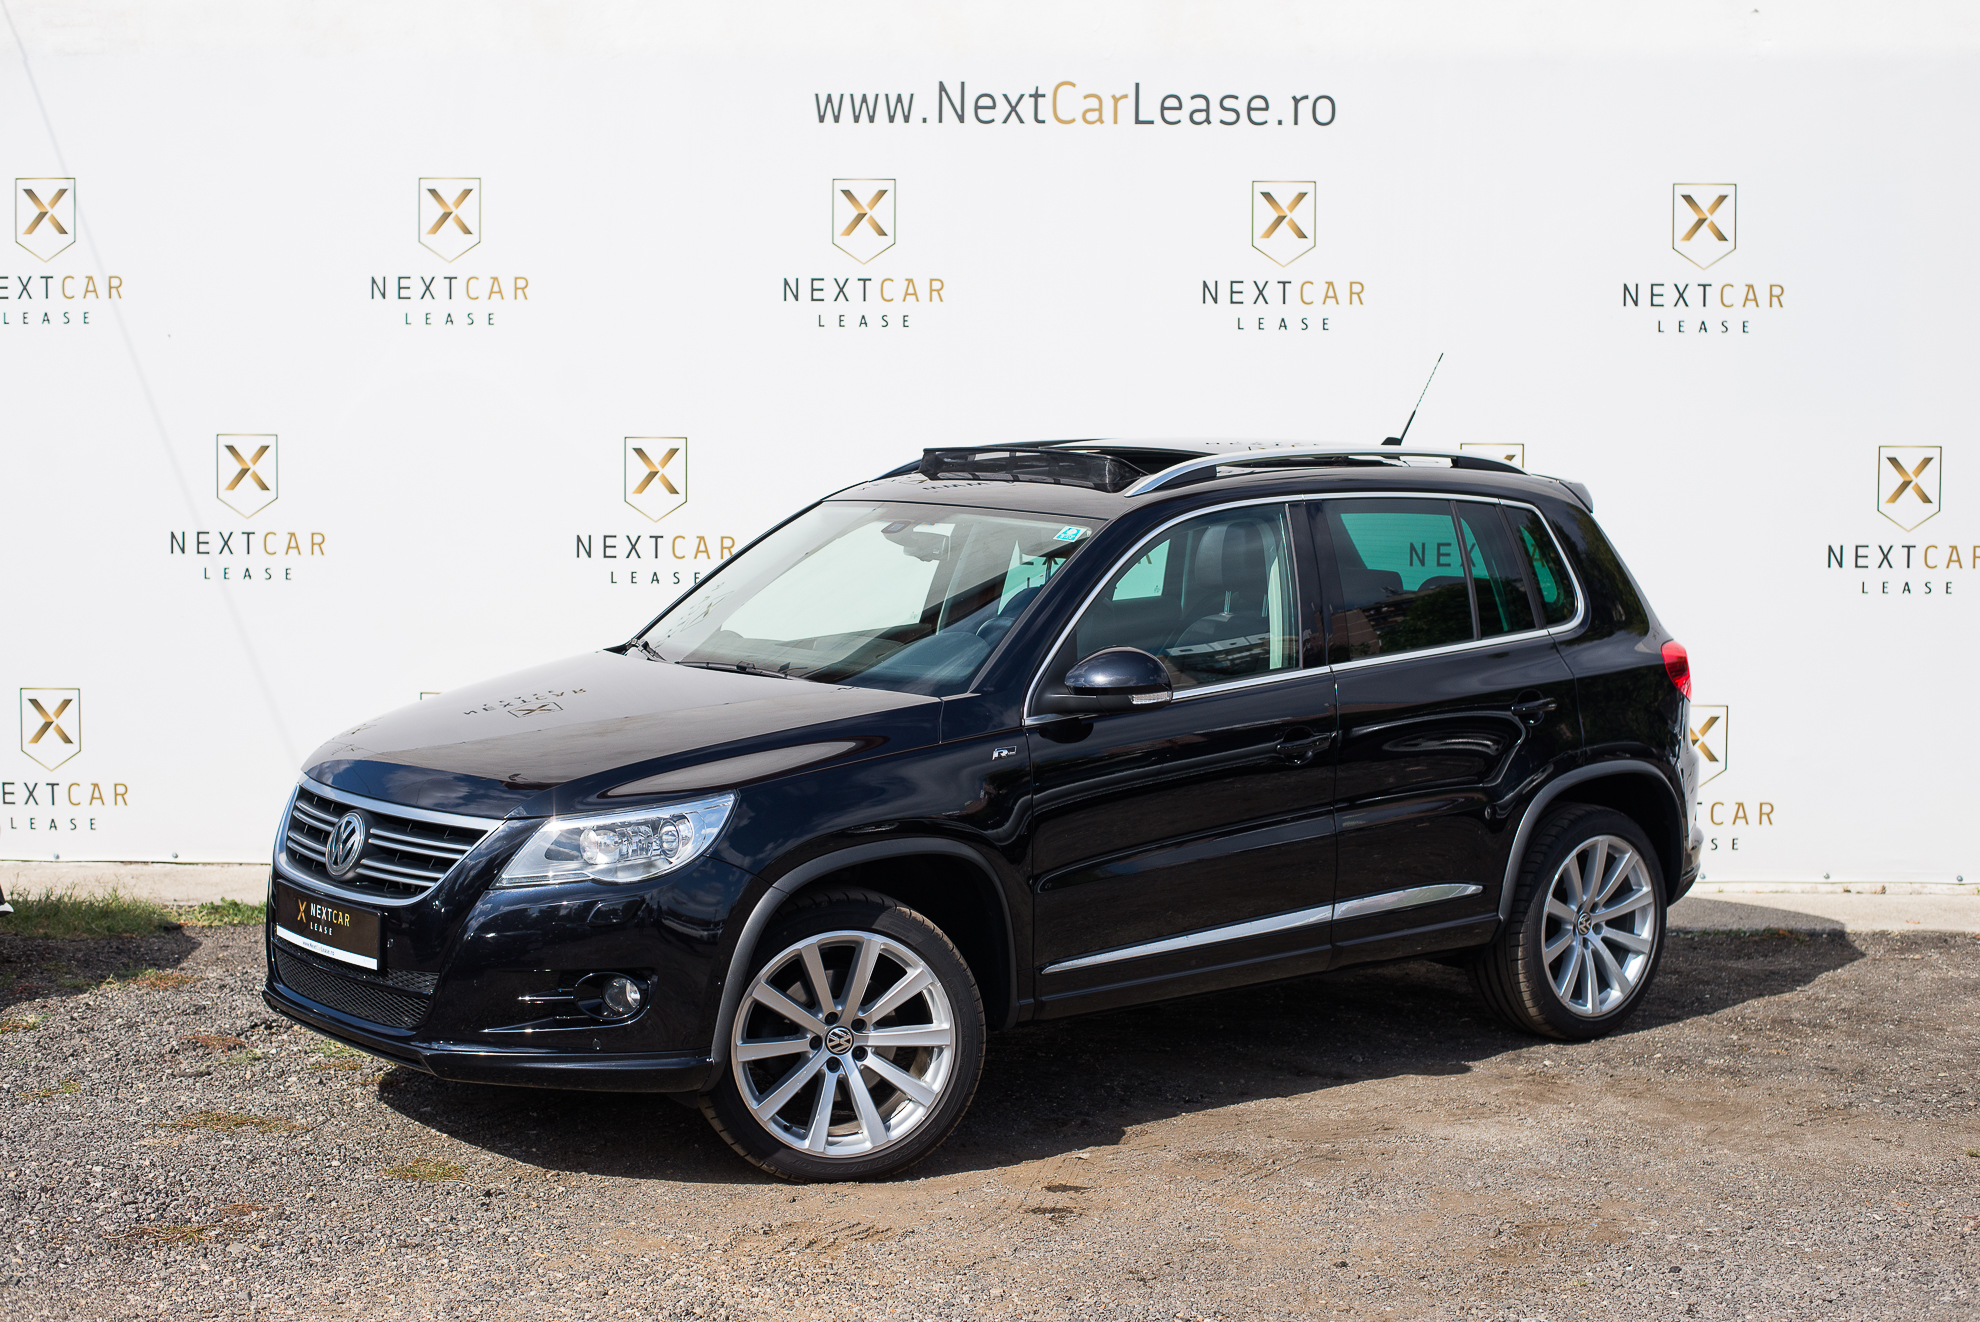 volkswagen tiguan r line 4motion next car lease. Black Bedroom Furniture Sets. Home Design Ideas